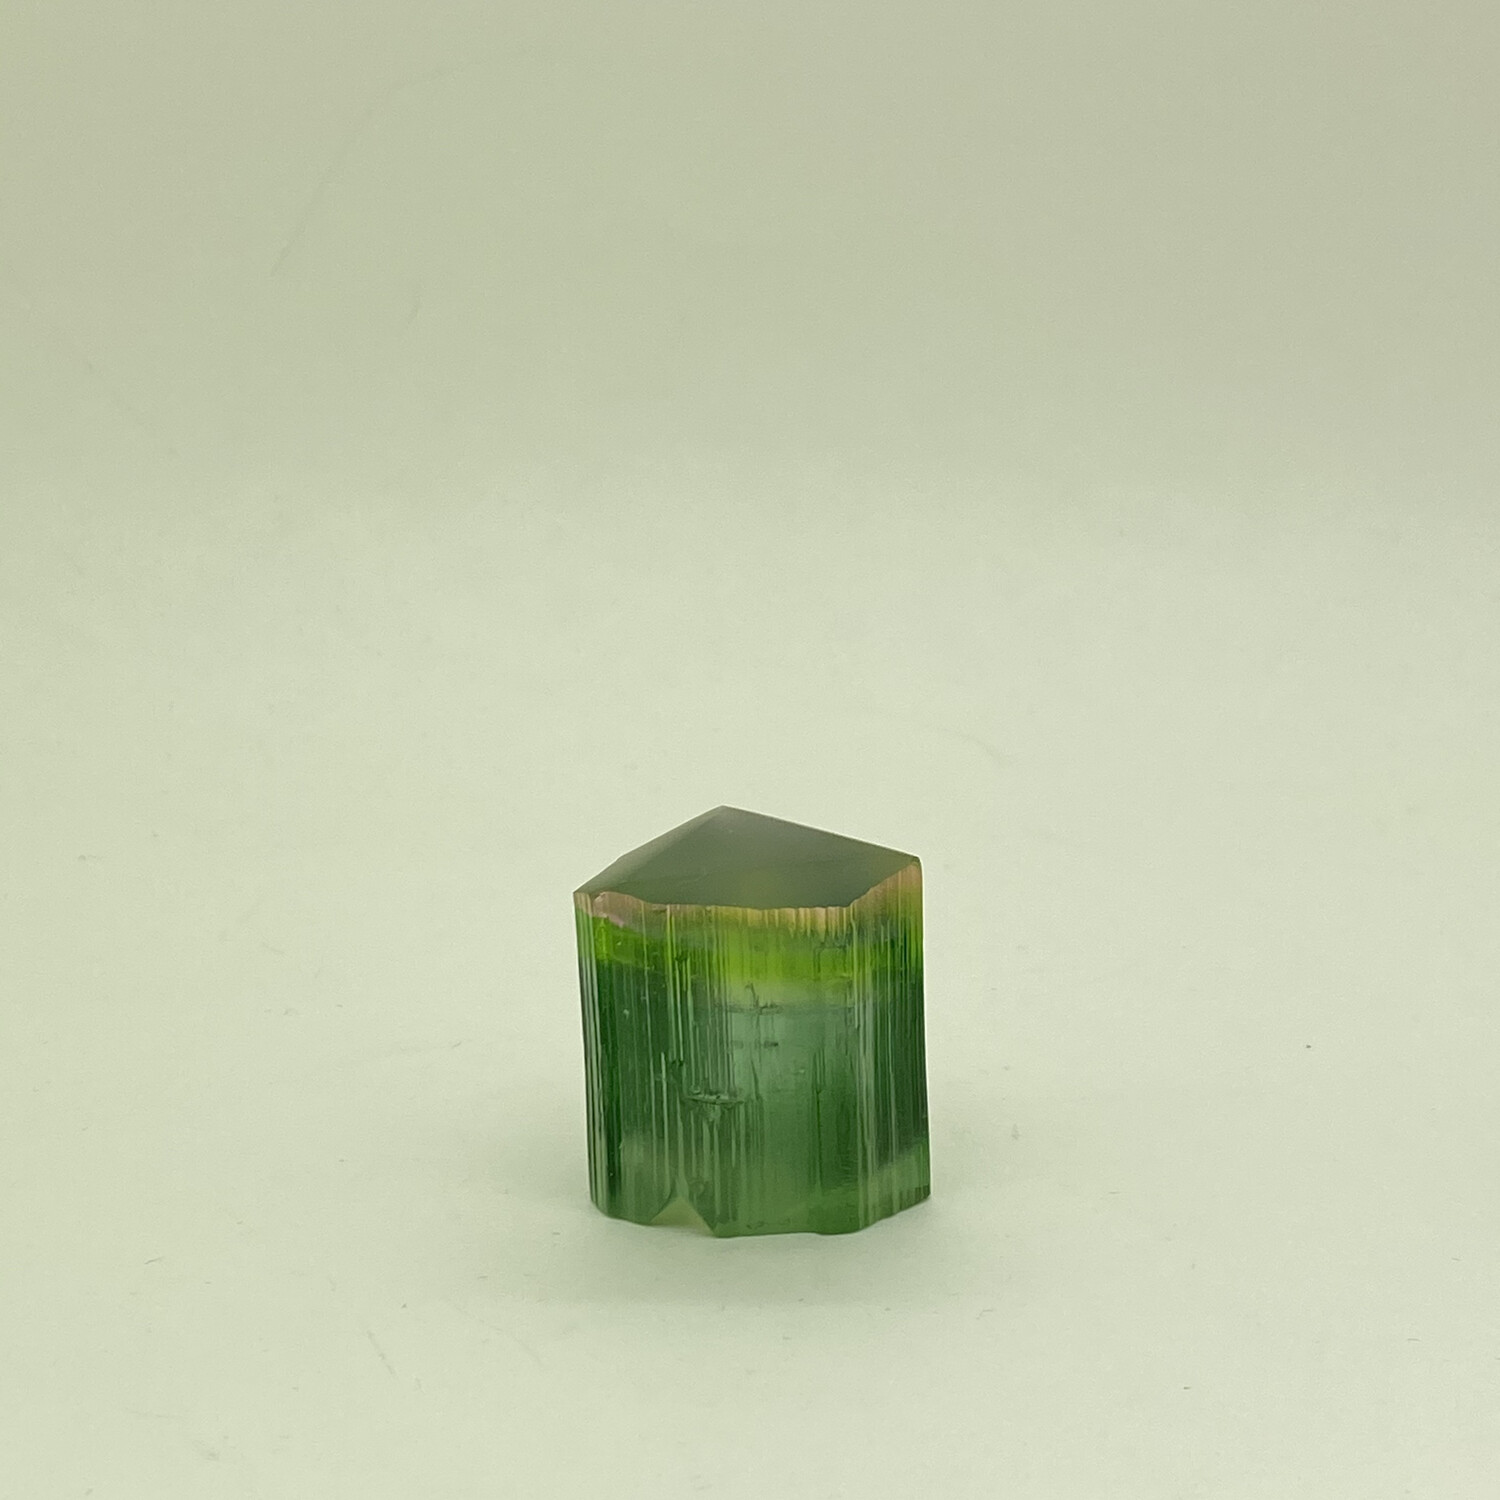 Digger x Str8 Glass Gem Spinners - Tourmaline